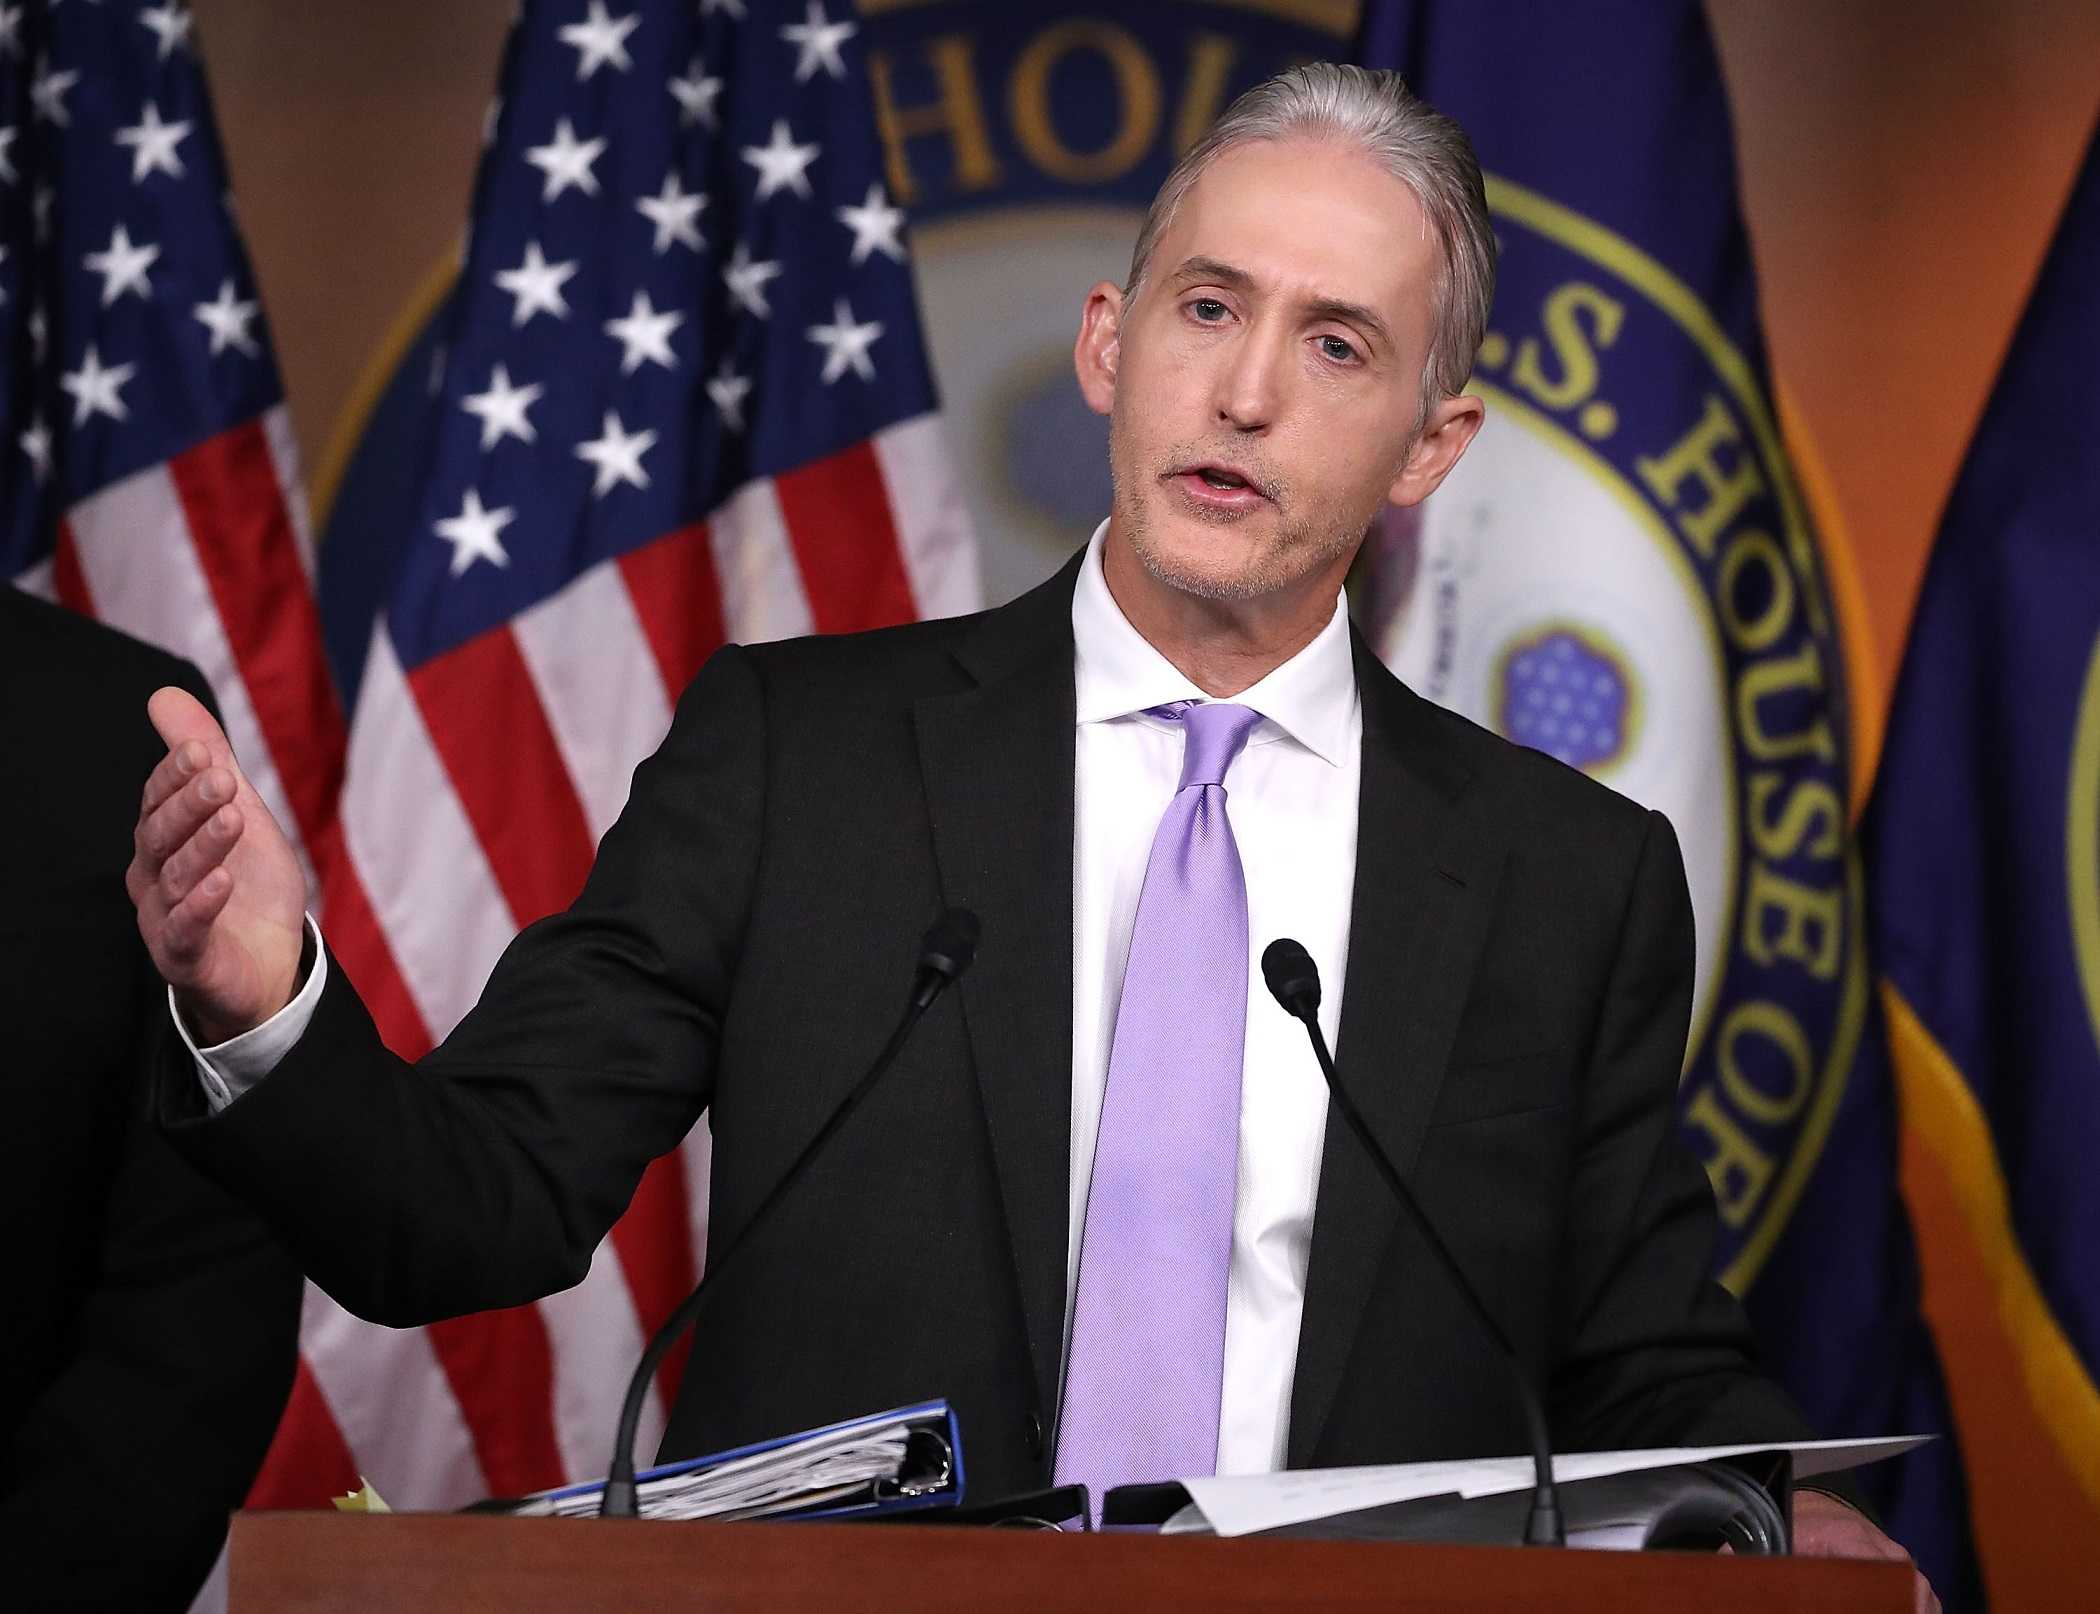 Trey Gowdy announces he is leaving politics